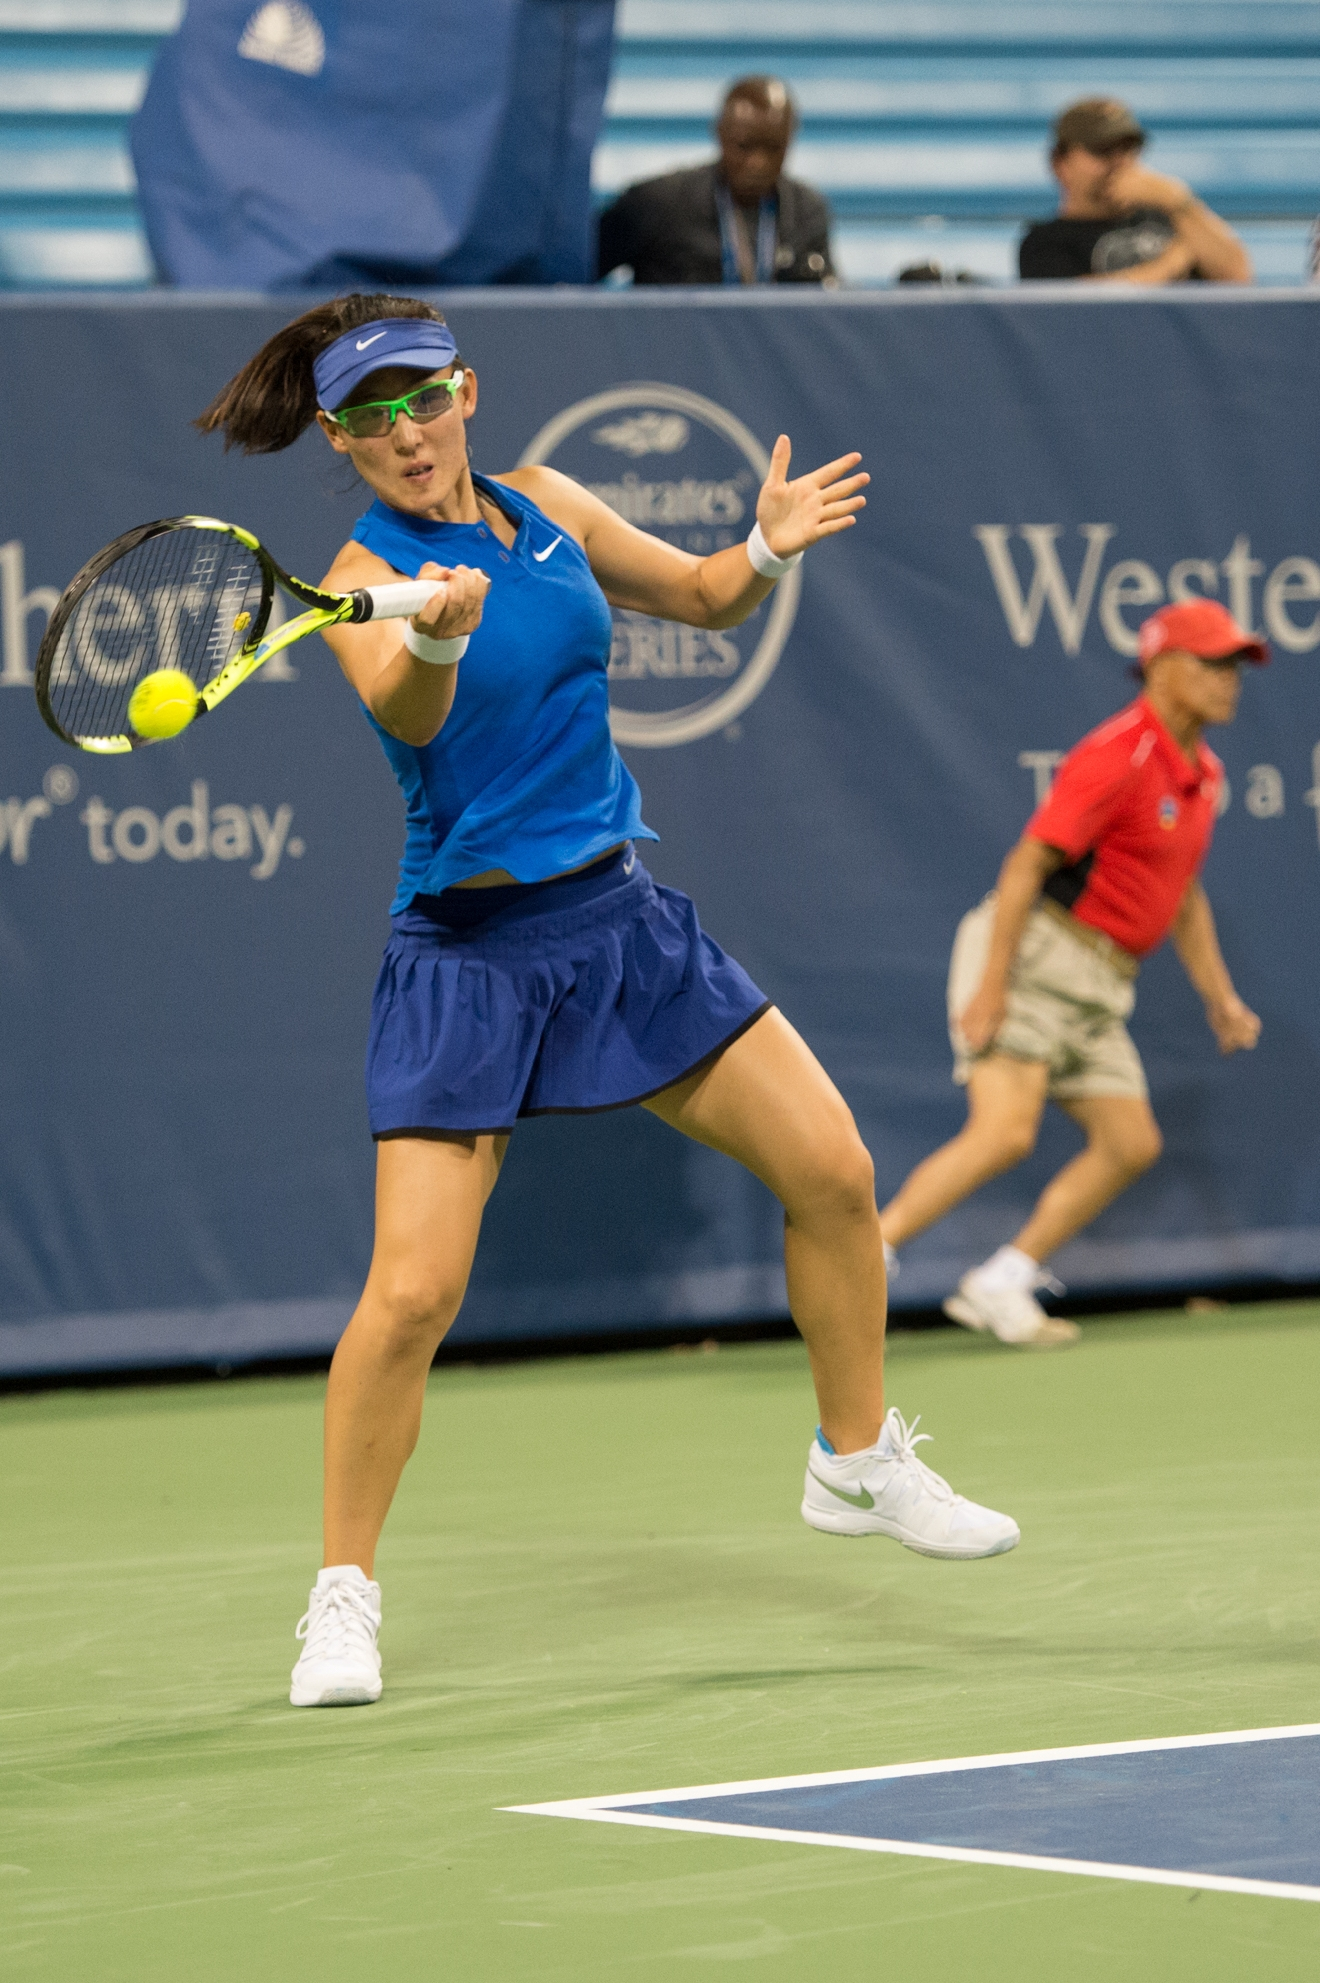 The Western & Southern Open (August 13-21) features the top men's and women's players on the ATP & WTA tours. It's played at the Lindner Family Tennis Center in Mason, OH. / Image: Chris Jenco